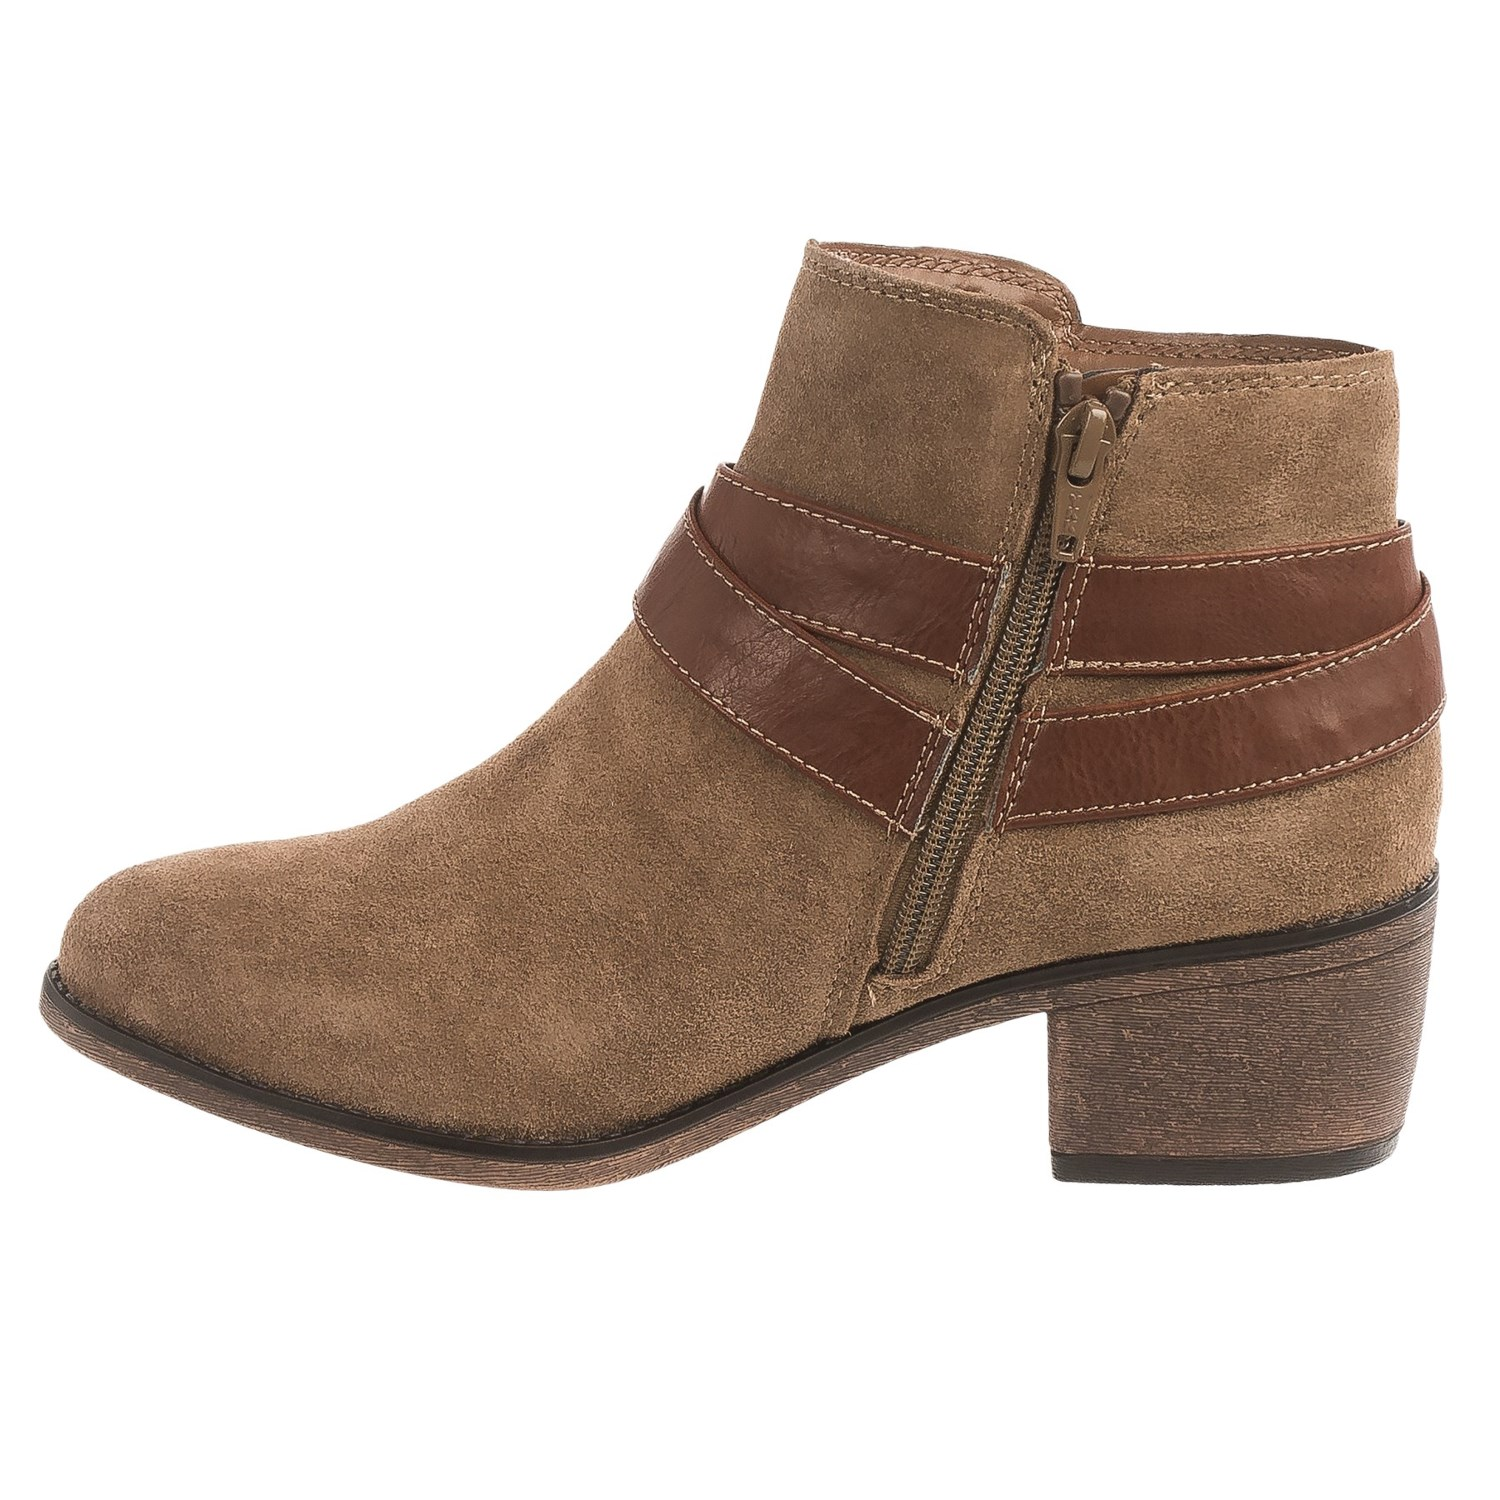 Lulus has genuine leather and suede shoes for women that you will love, cute leather sandals, sexy leather heels, and leather boots. Chinese Laundry Stella Mink Suede Leather Slouchy Mid-Calf Boots $ Dolce Vita Walter White Suede Leather Sneakers.